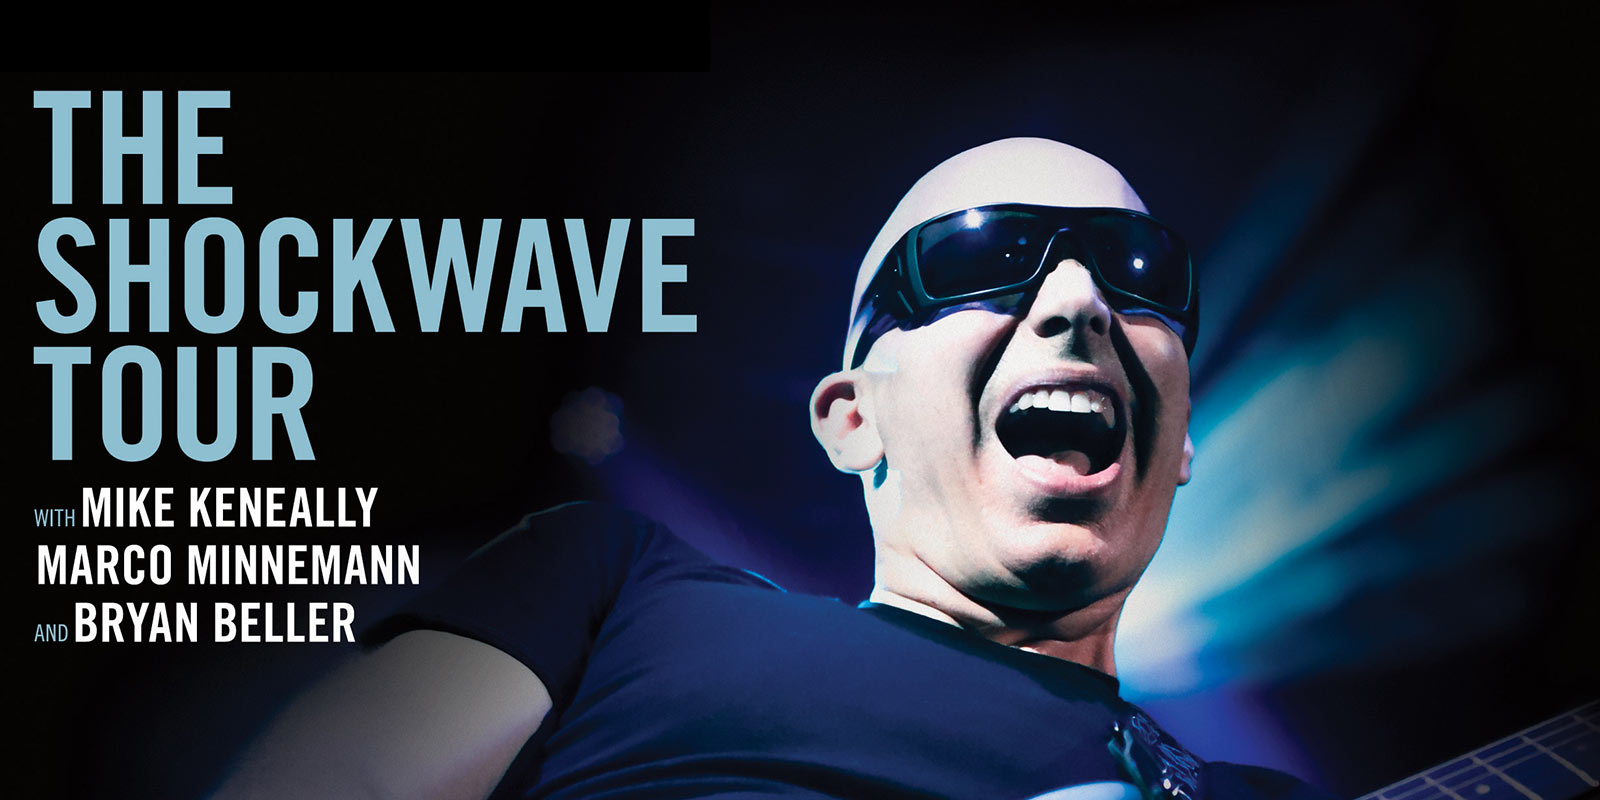 Tournée 2015 Joe Satriani Shockwave Tour